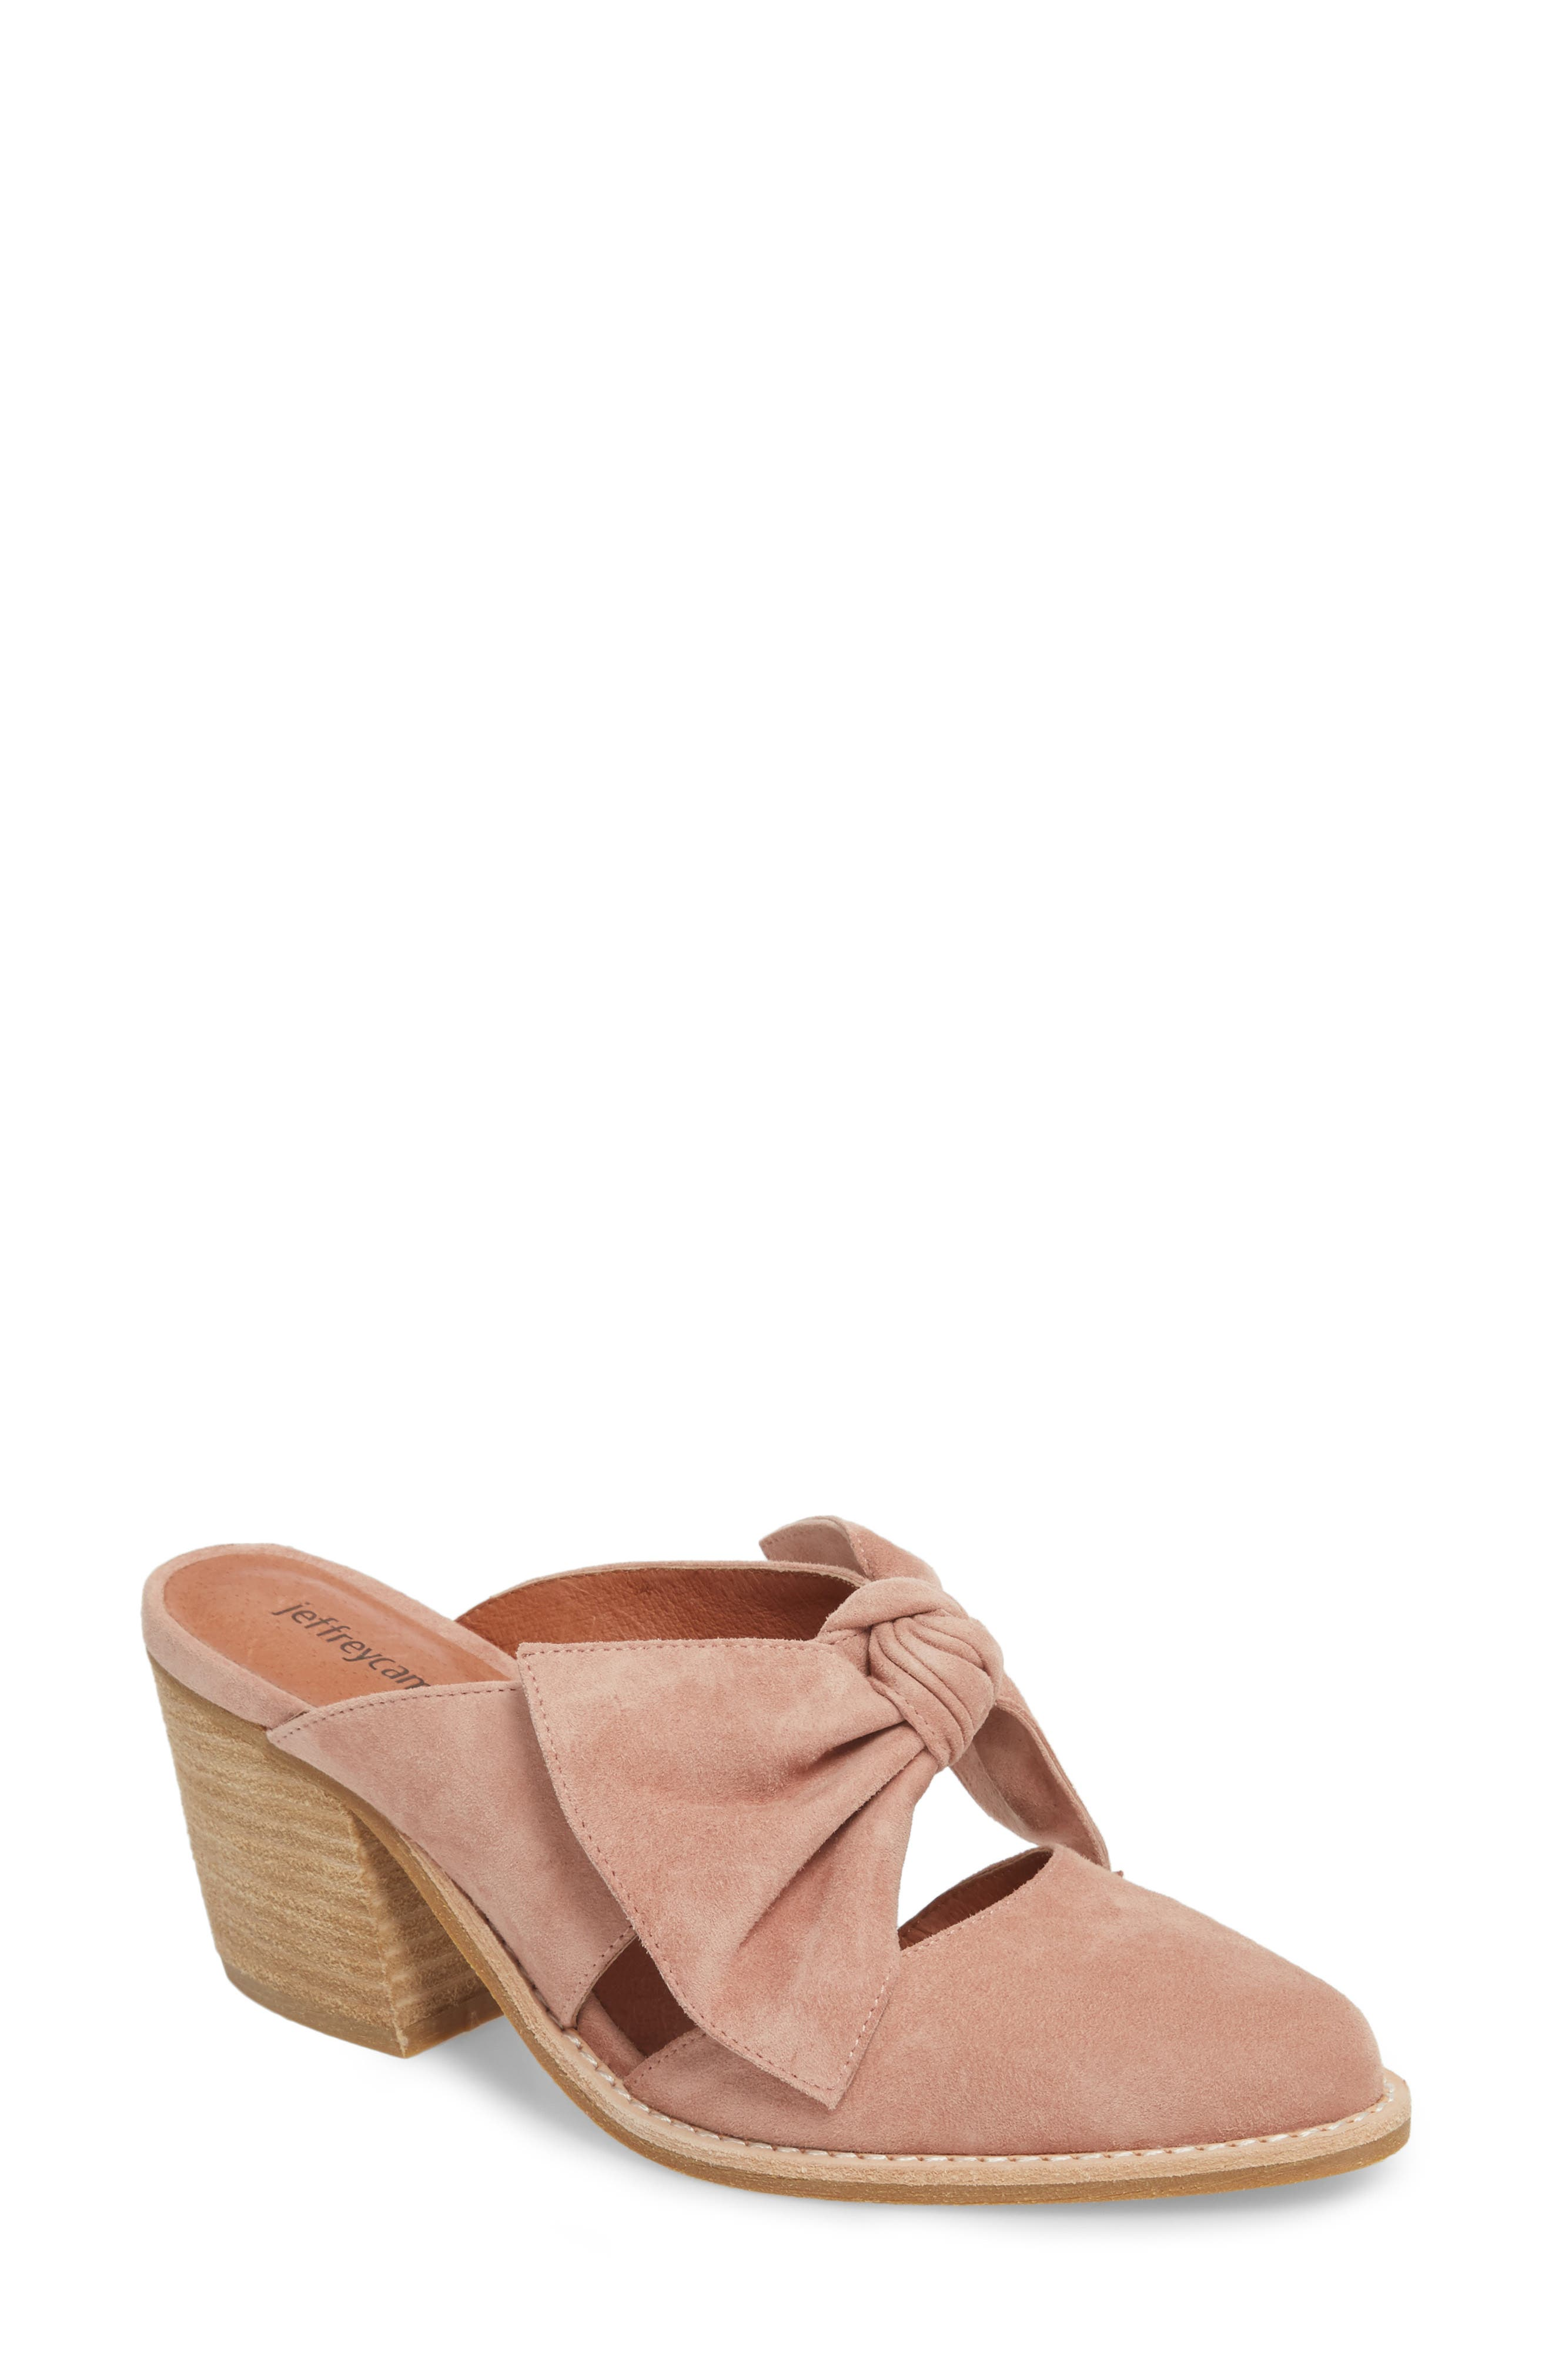 Cyrus Knotted Mary Jane Mule,                         Main,                         color, Blush Suede